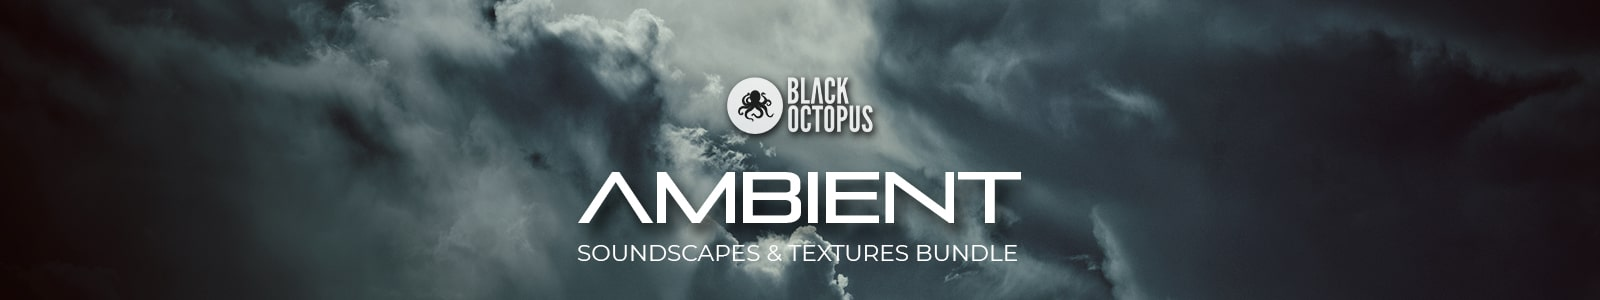 ambient soundscapes and textures